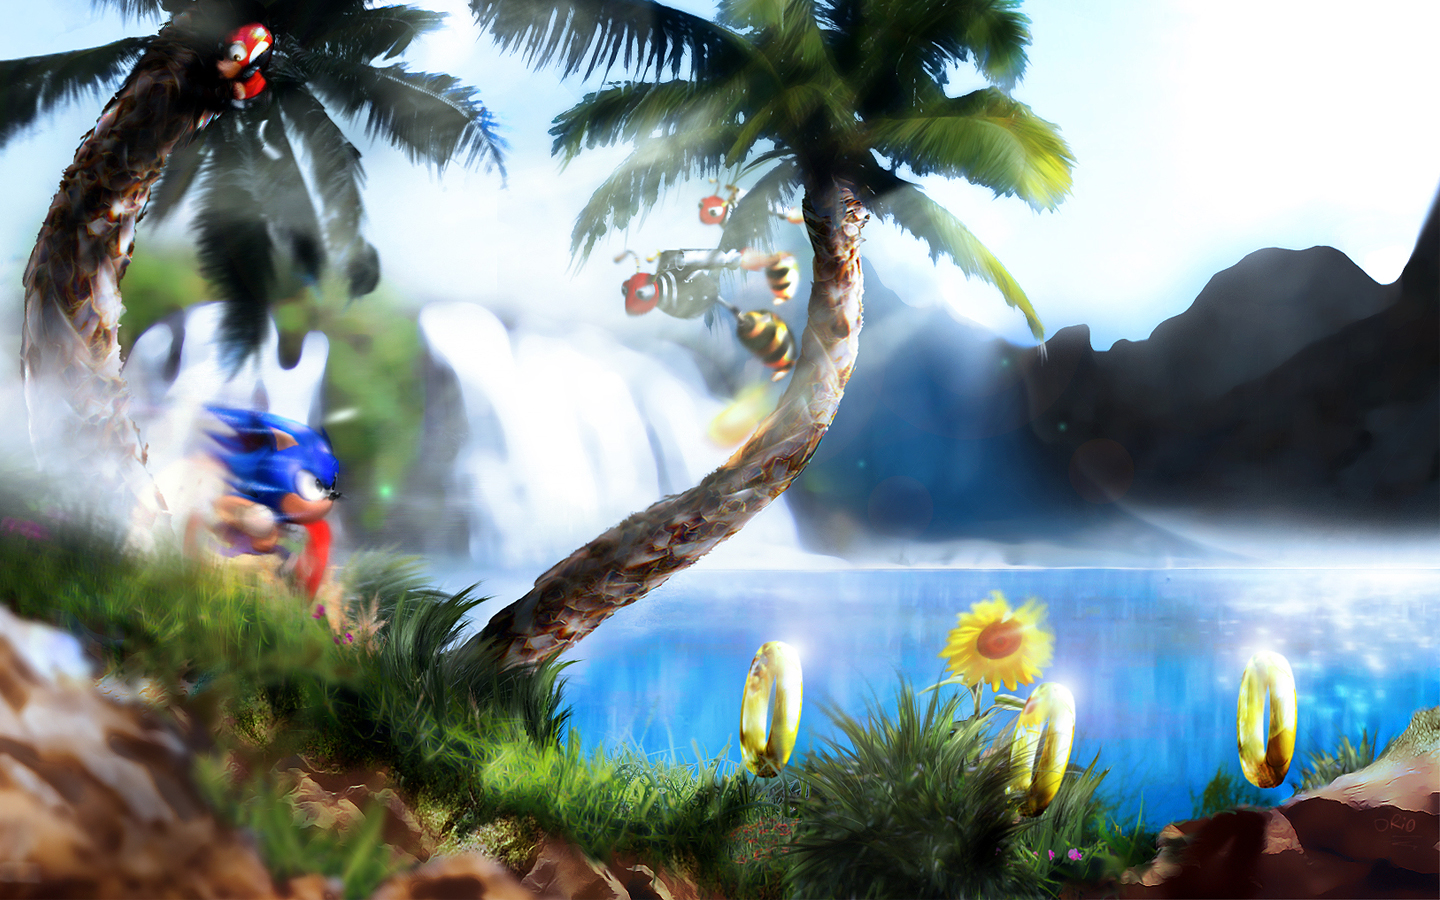 47+] HD Sonic Wallpaper 1080p on WallpaperSafari